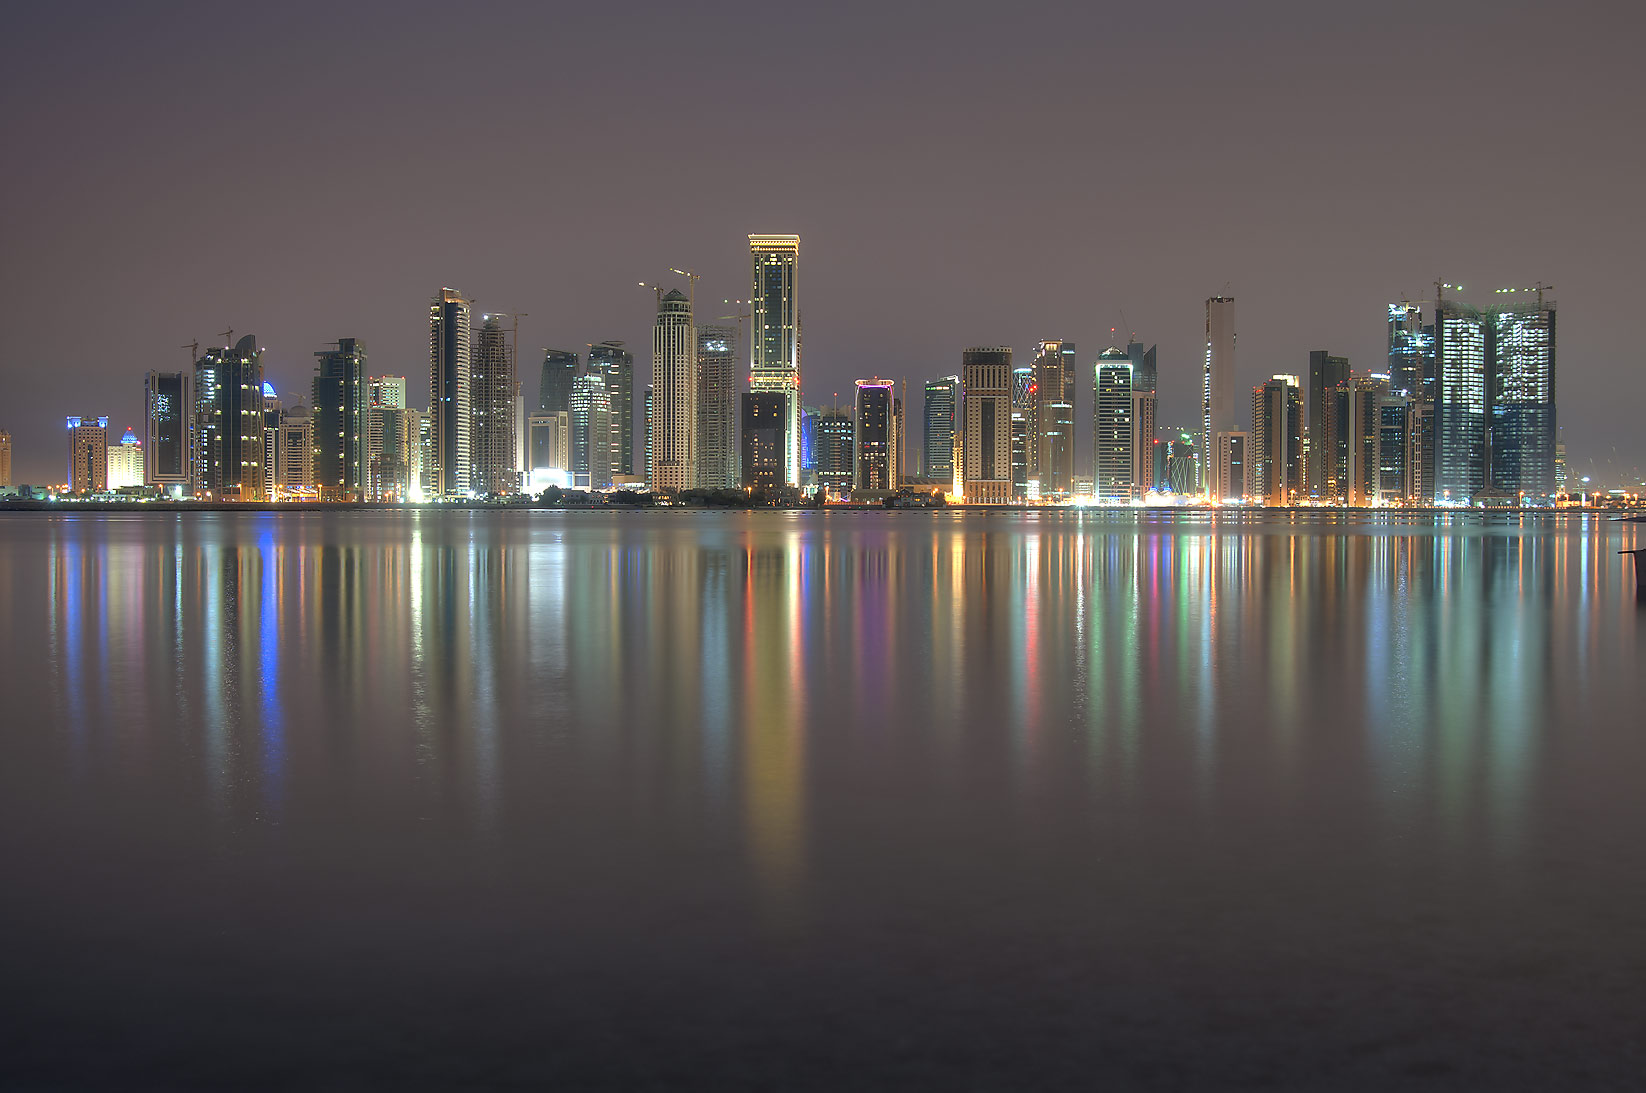 Northern area of West Bay from a beach south of...Hotel at night. Doha, Qatar